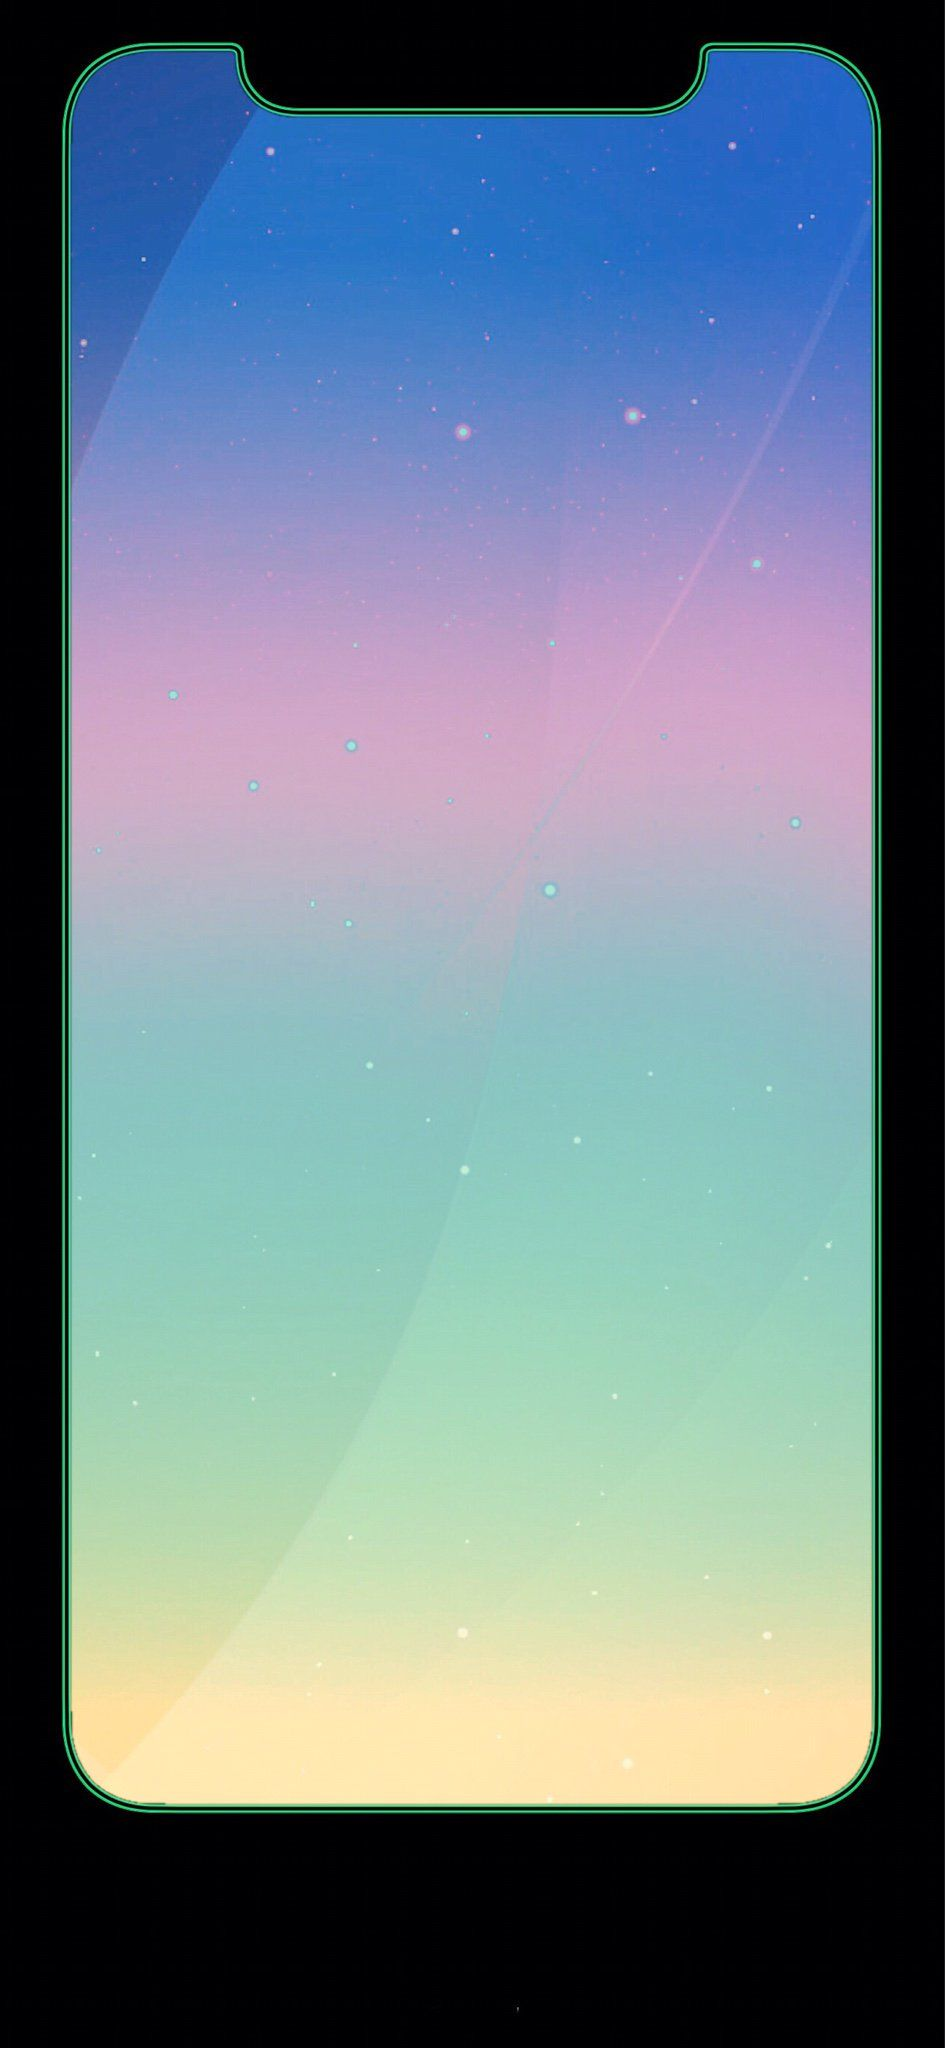 The iPhone X Wallpaper Thread Page 27 iPhone iPad iPod Forums